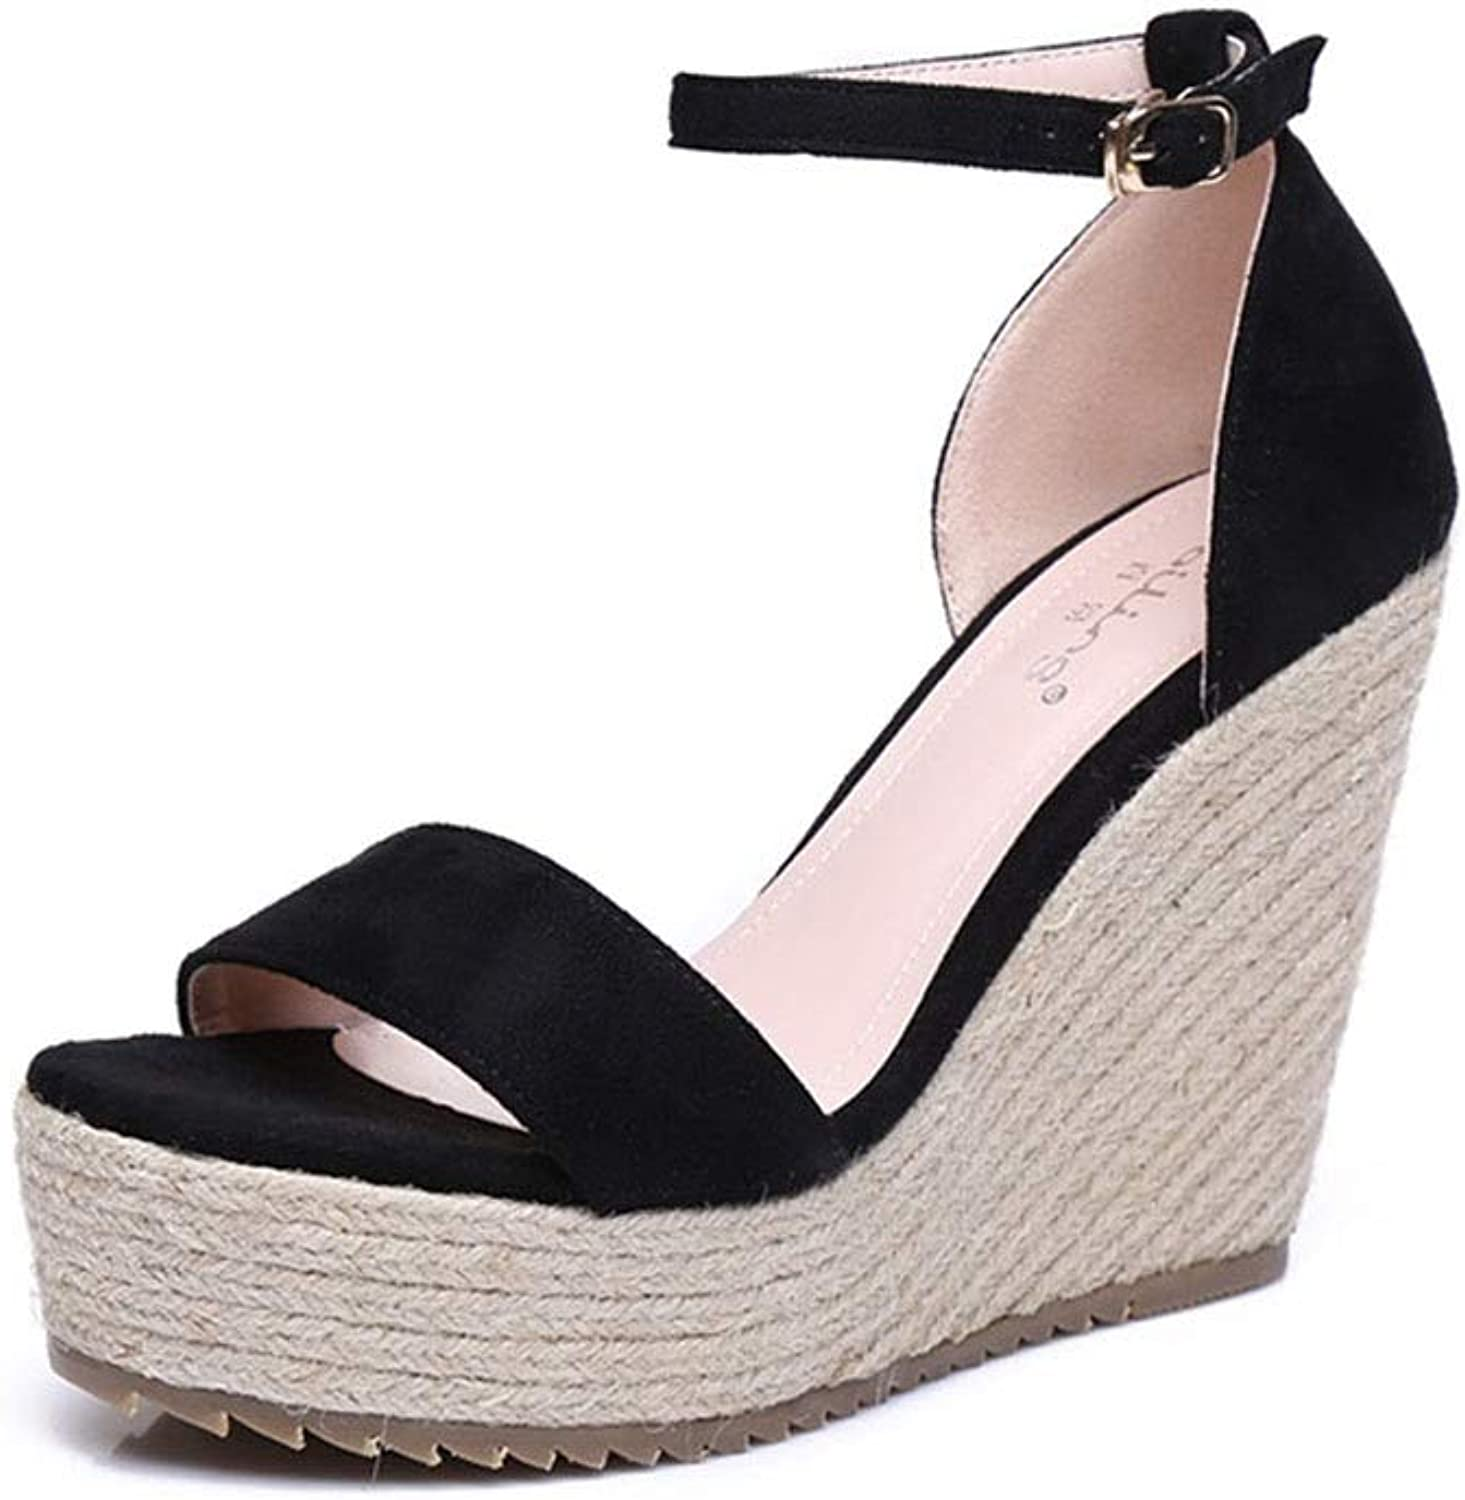 Sandals Sandals Women's Sandals Summer Wedge Sandals Fashion Simple Woven Sandals Soft Comfortable Women's shoes High Heels 10Cm (color   Black, Size   37)